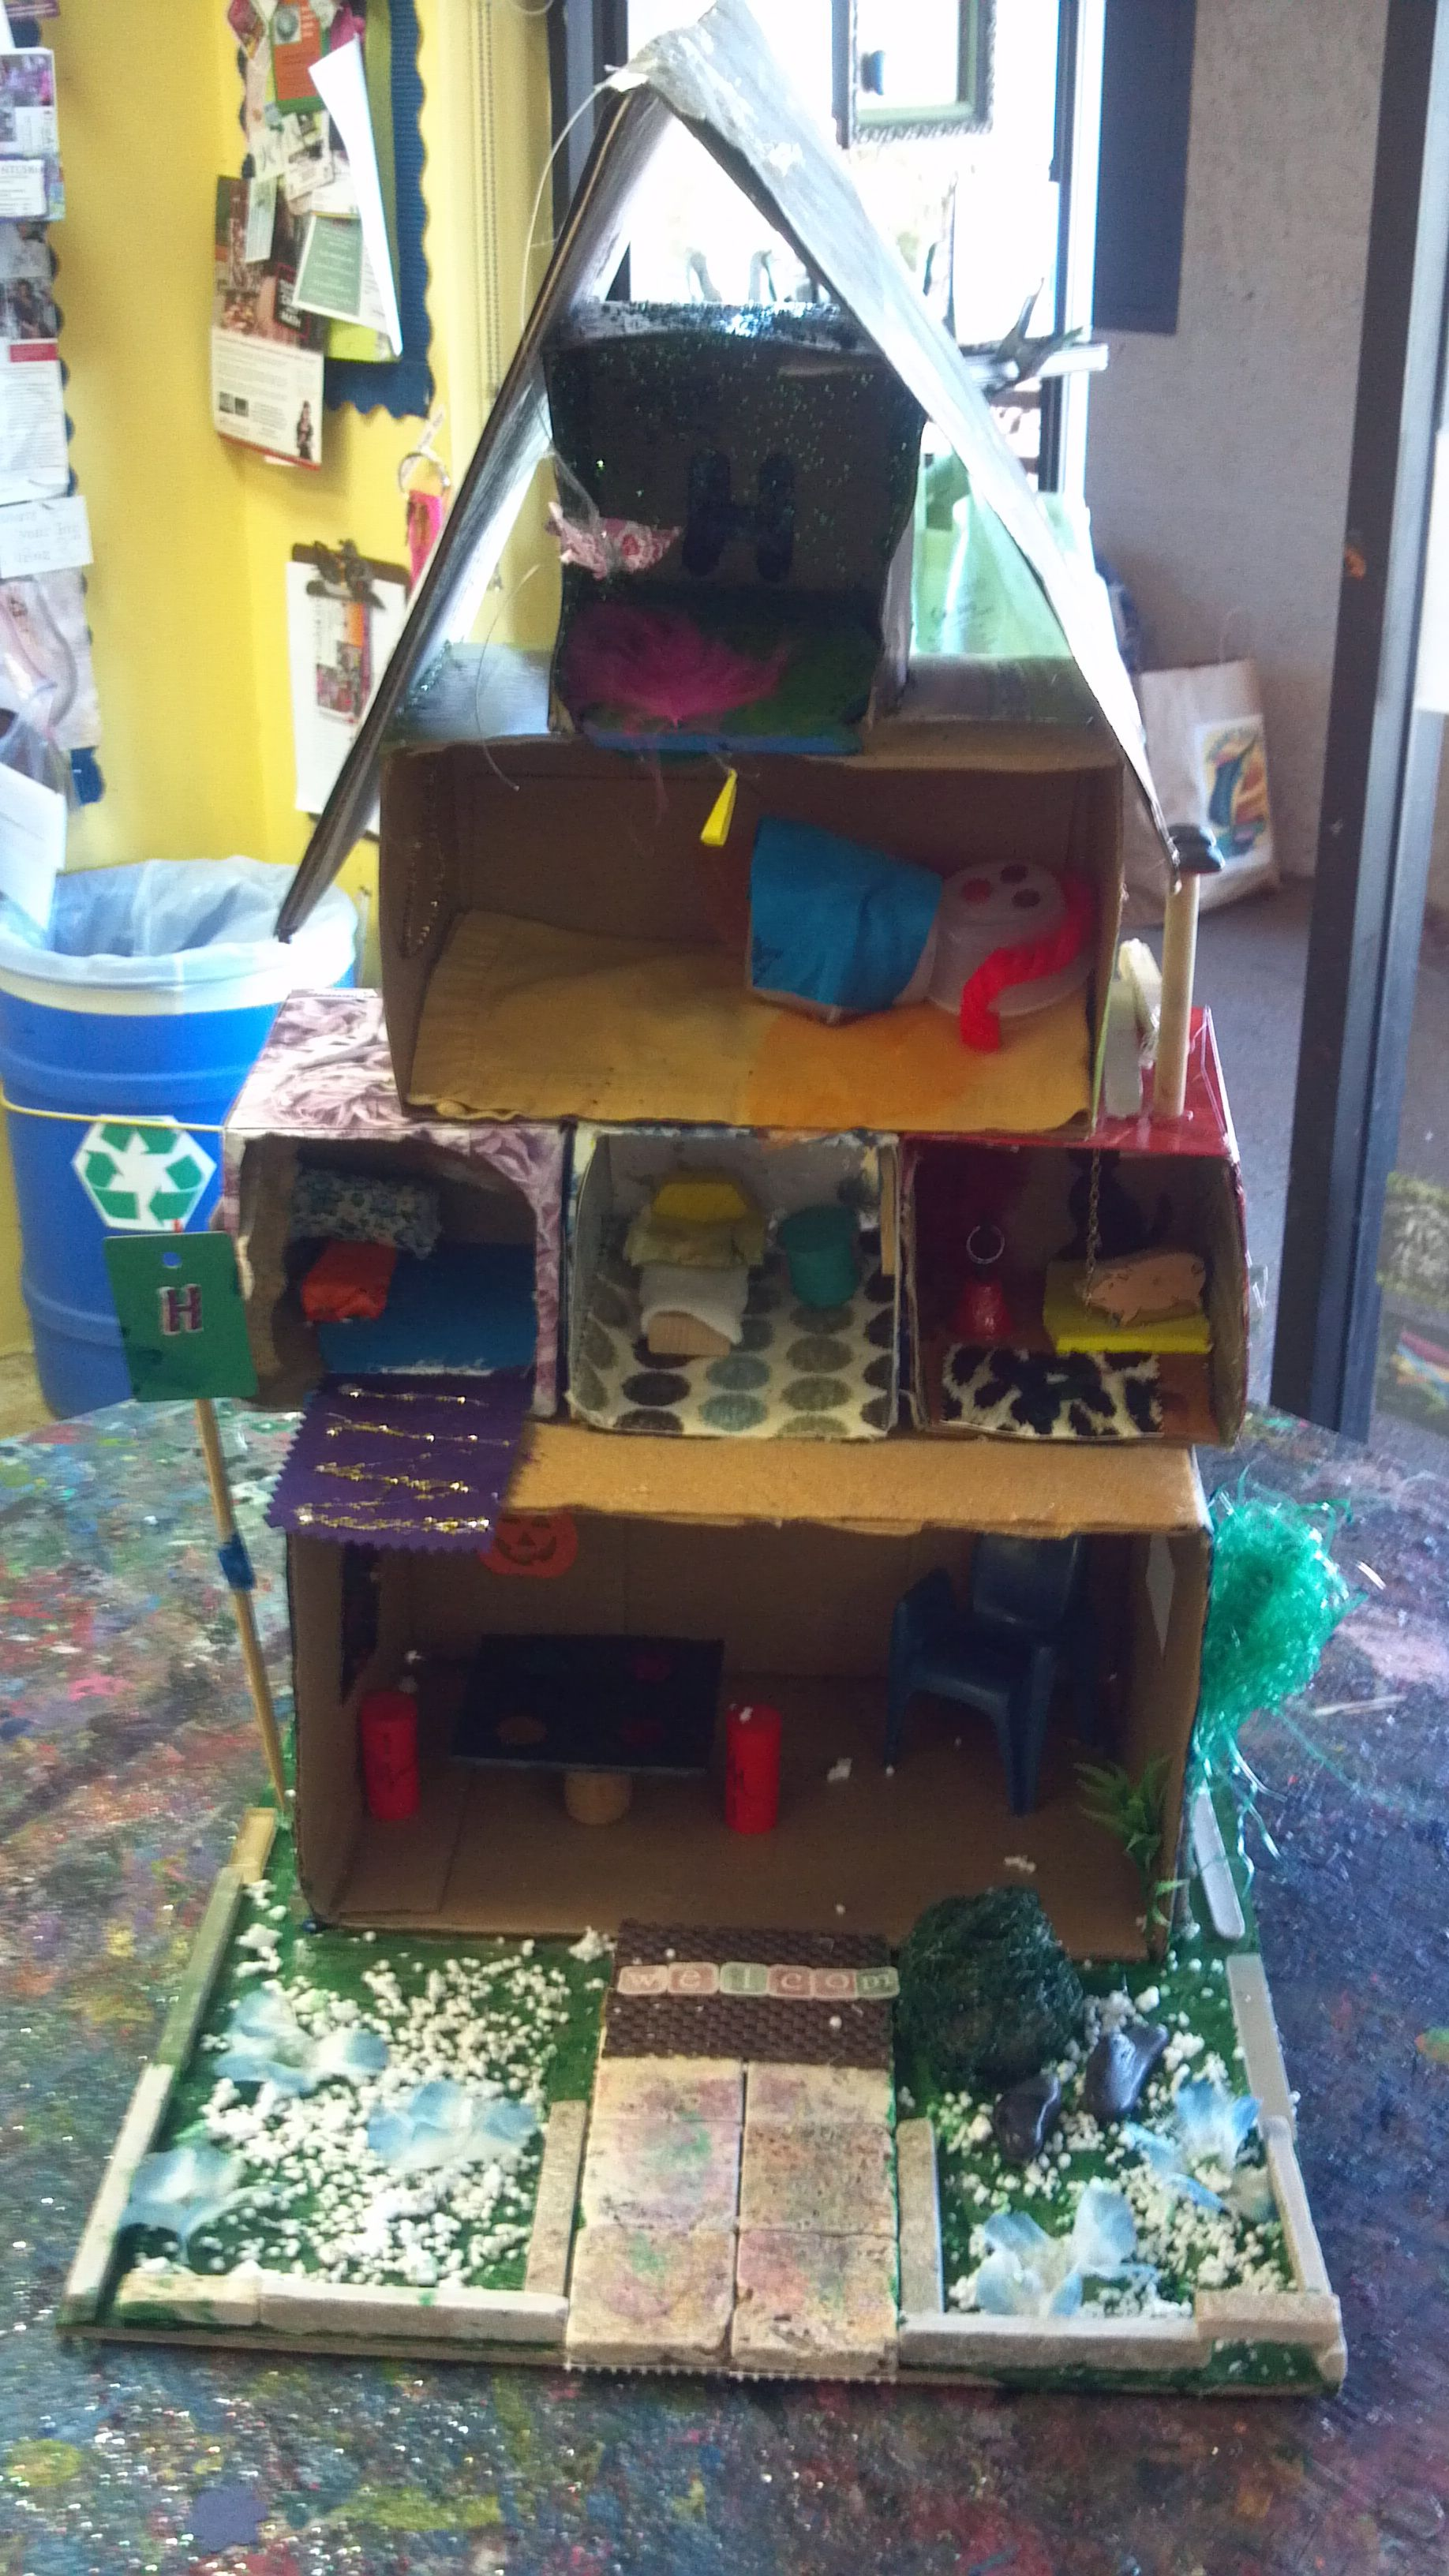 Today Is World Habitat Day 10 1 12 This Multi Level